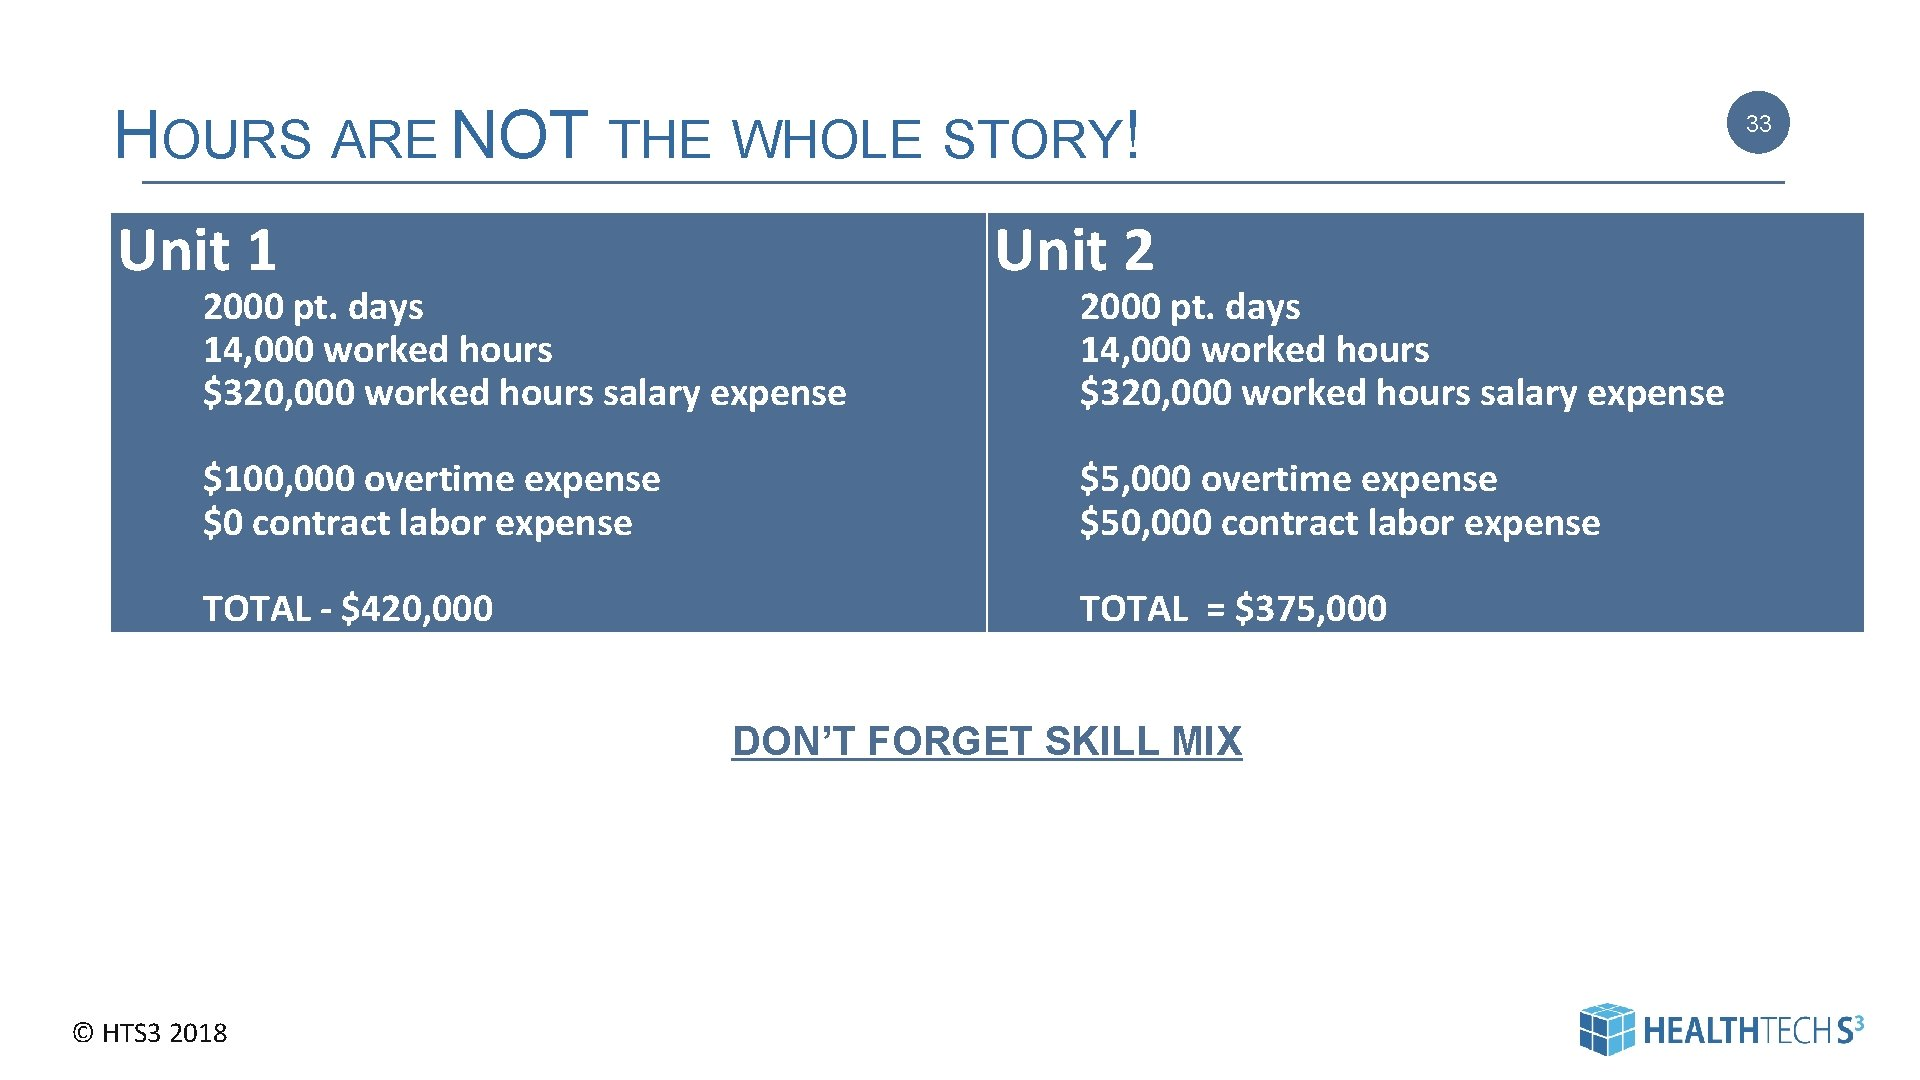 HOURS ARE NOT THE WHOLE STORY! Unit 1 2000 pt. days 14, 000 worked